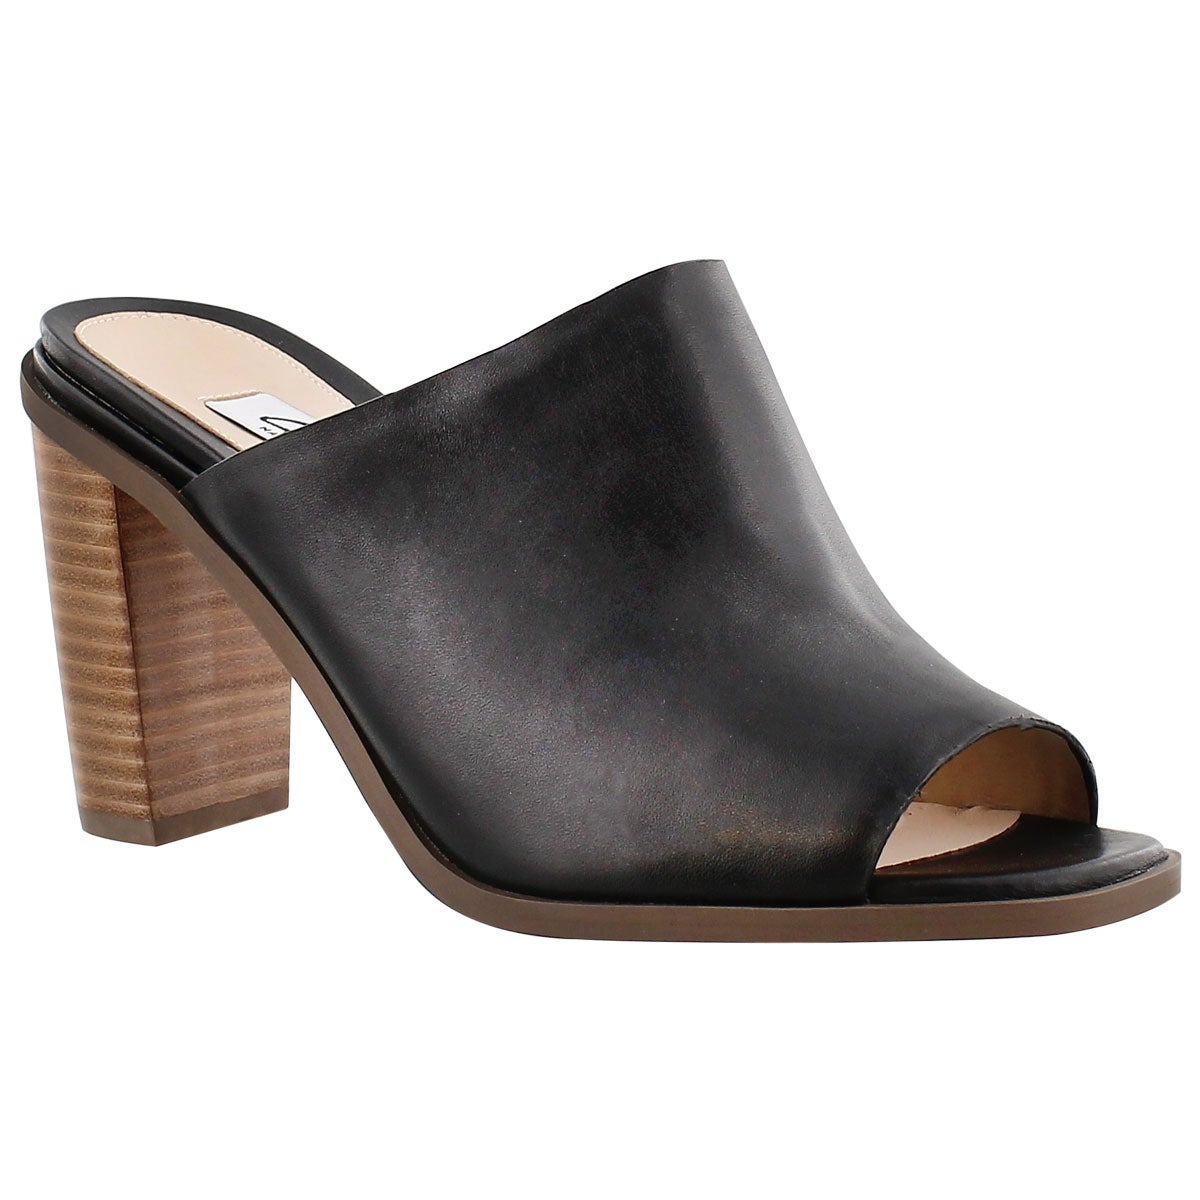 Lds Image Gallery black dress sandal